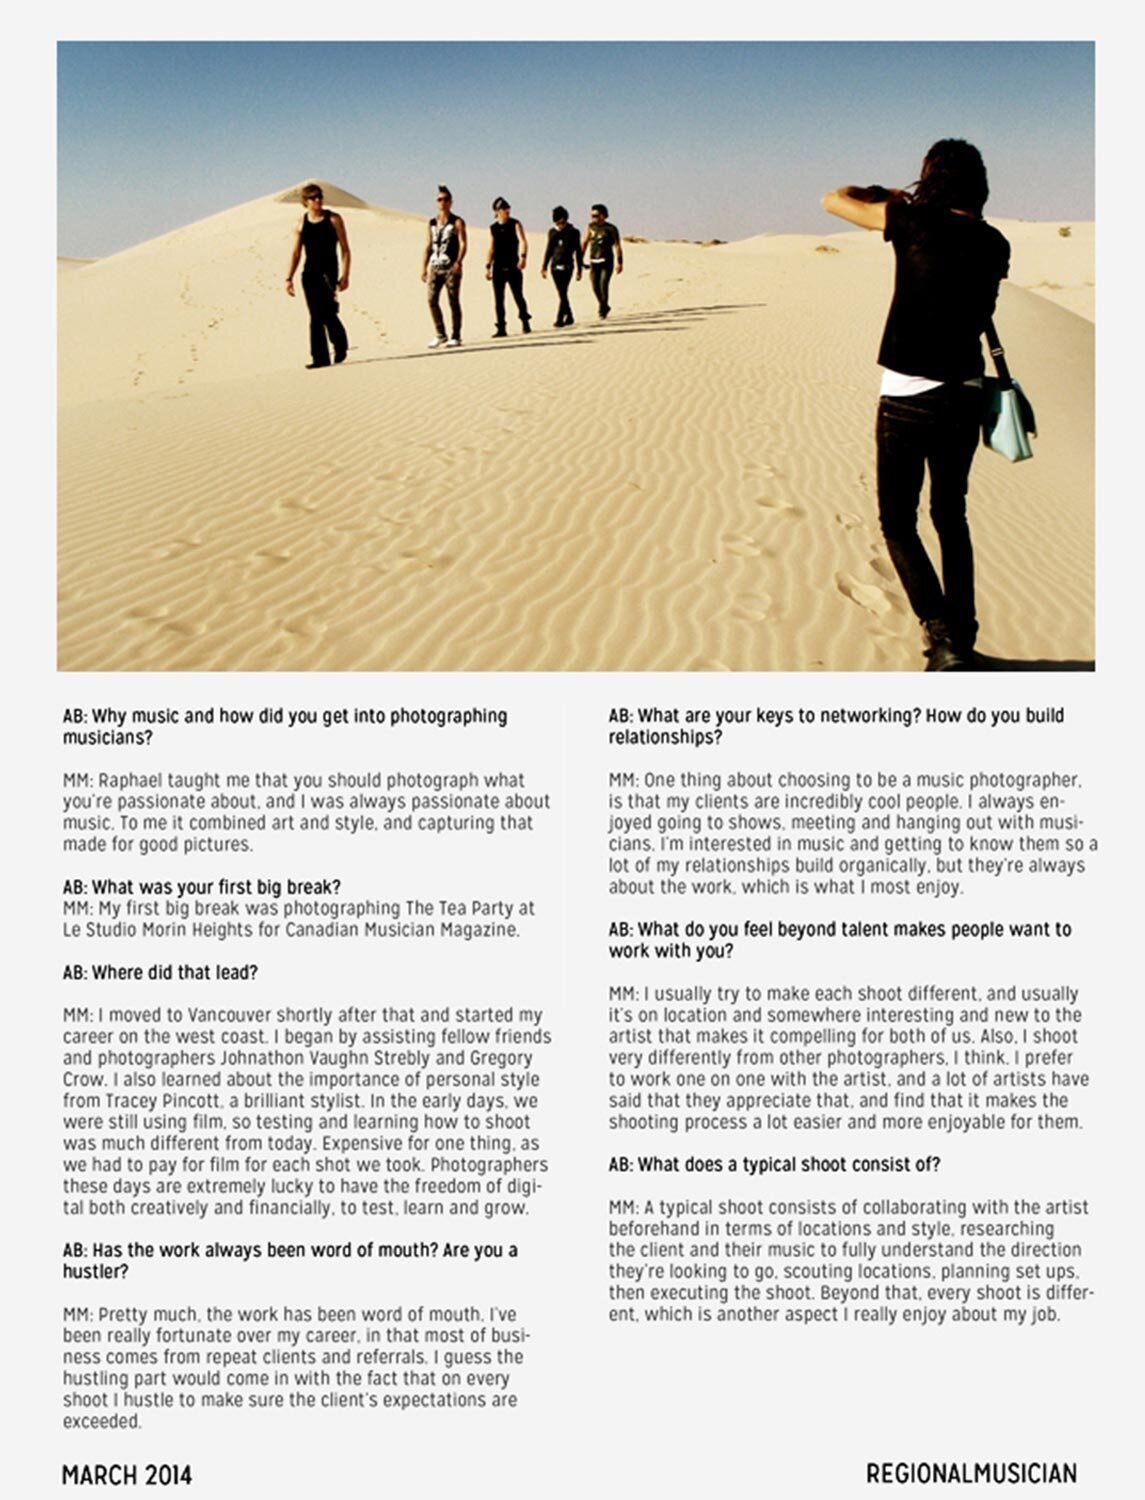 Regional Musician Magazine Interview featuring Mark Maryanovich Page 2 behind the scenes Mark photographing band walking in desert